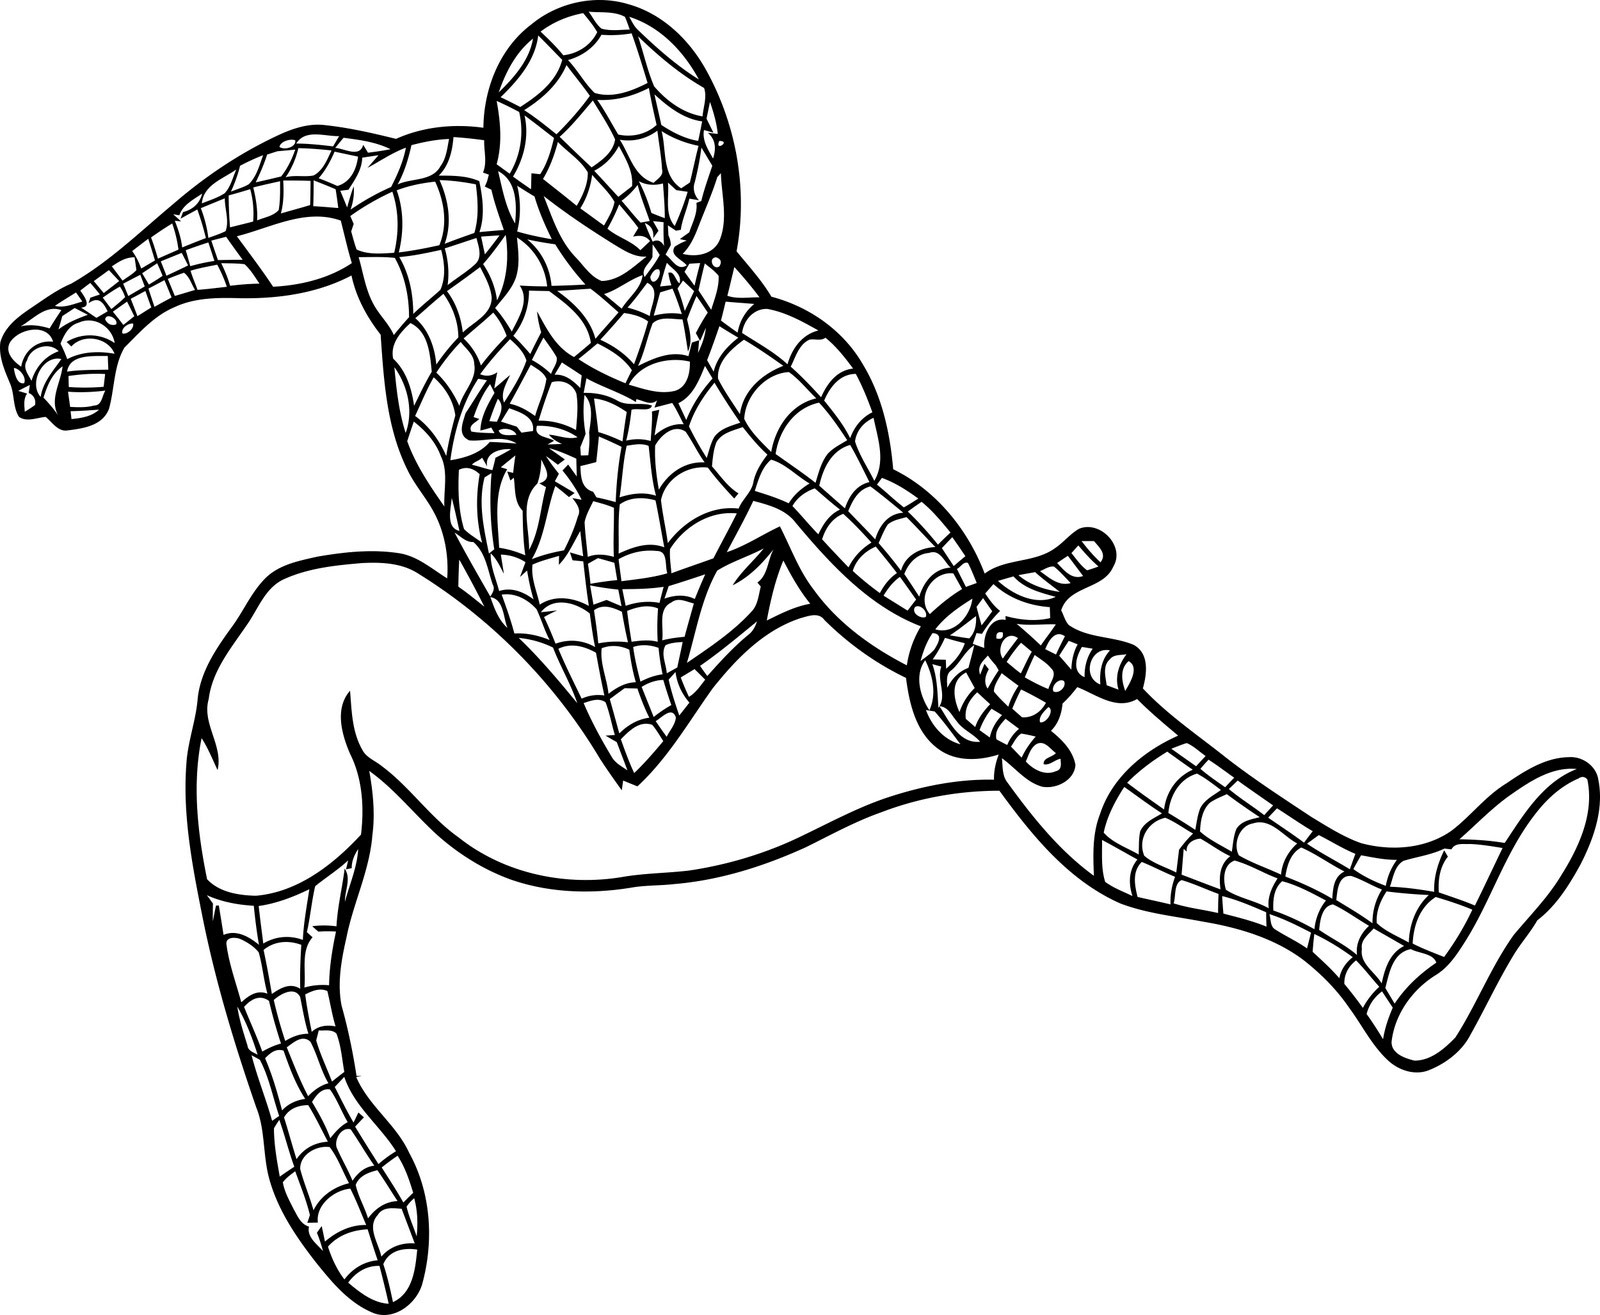 Free Coloring Pages For Kids Spiderman  Free Printable Spiderman Coloring Pages For Kids